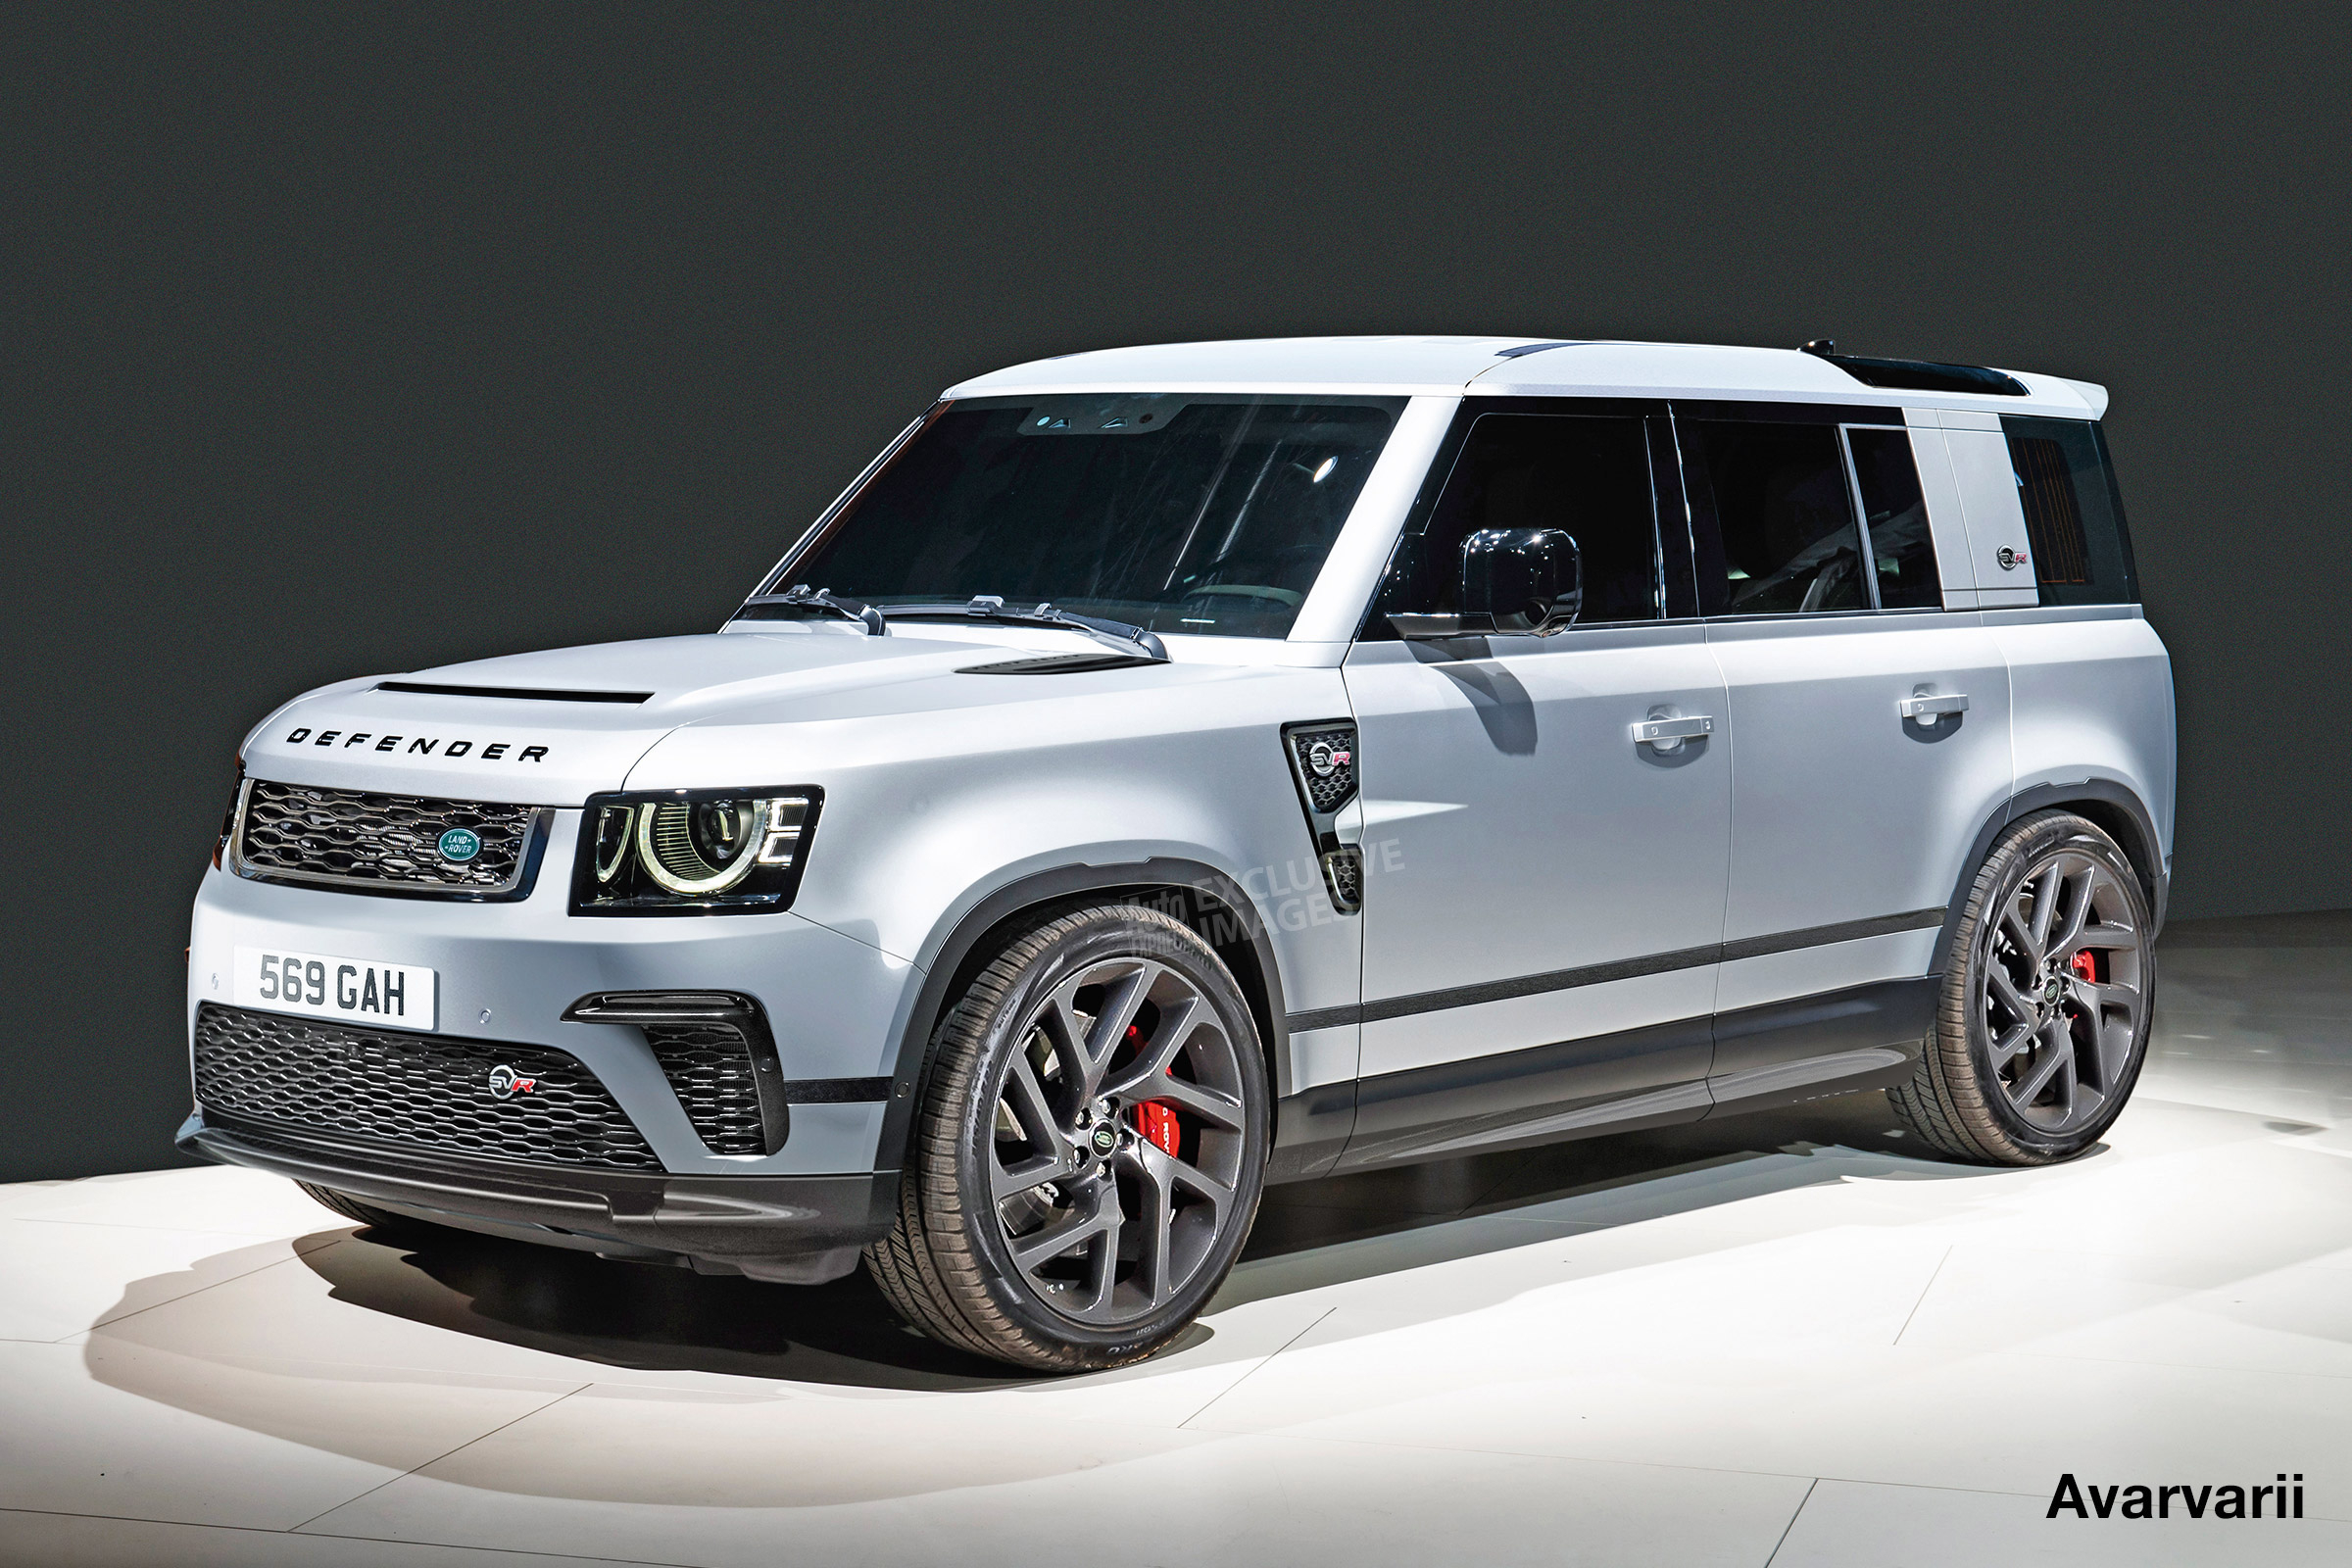 New 2021 Land Rover Defender Svr Engine, Towing Capacity ...